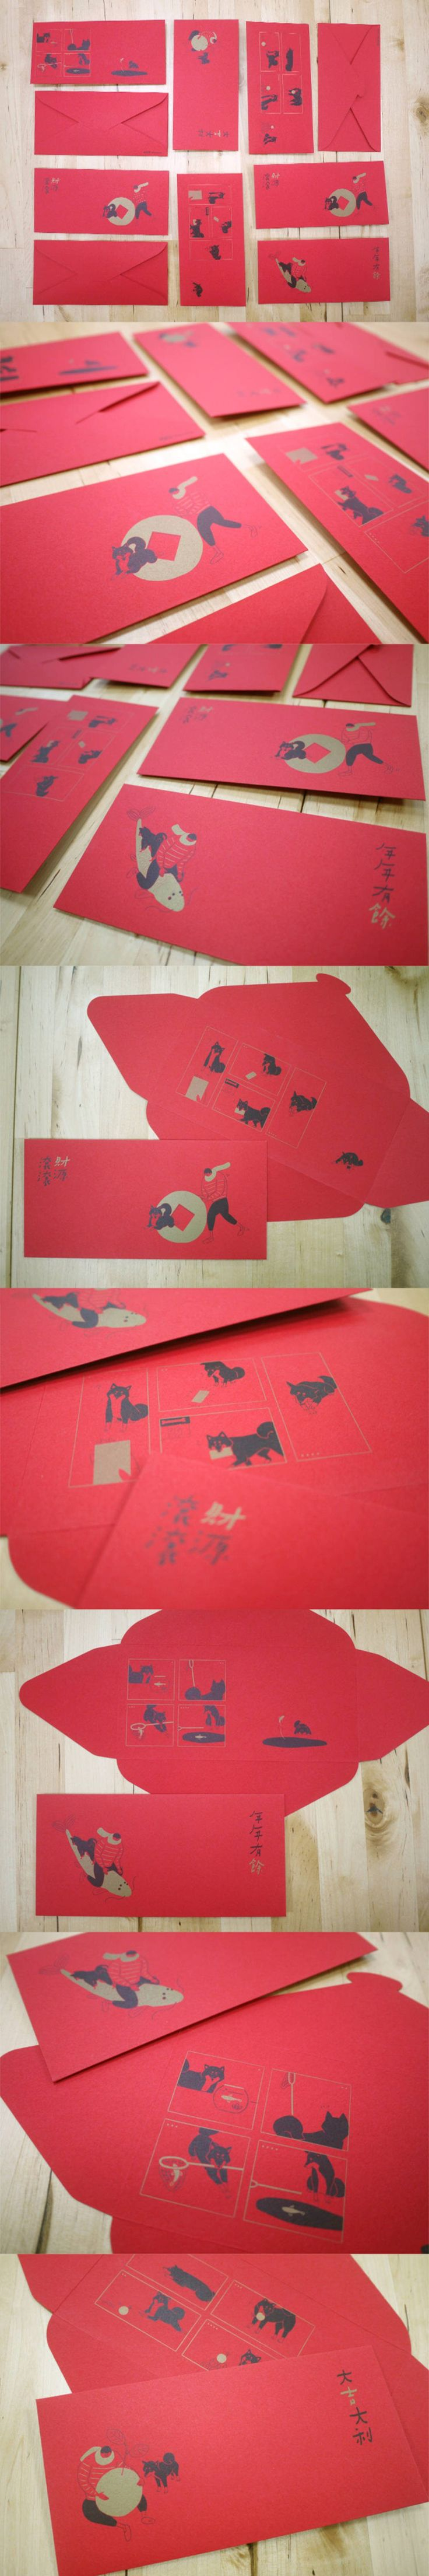 year of horse chinese new year red envelope printable